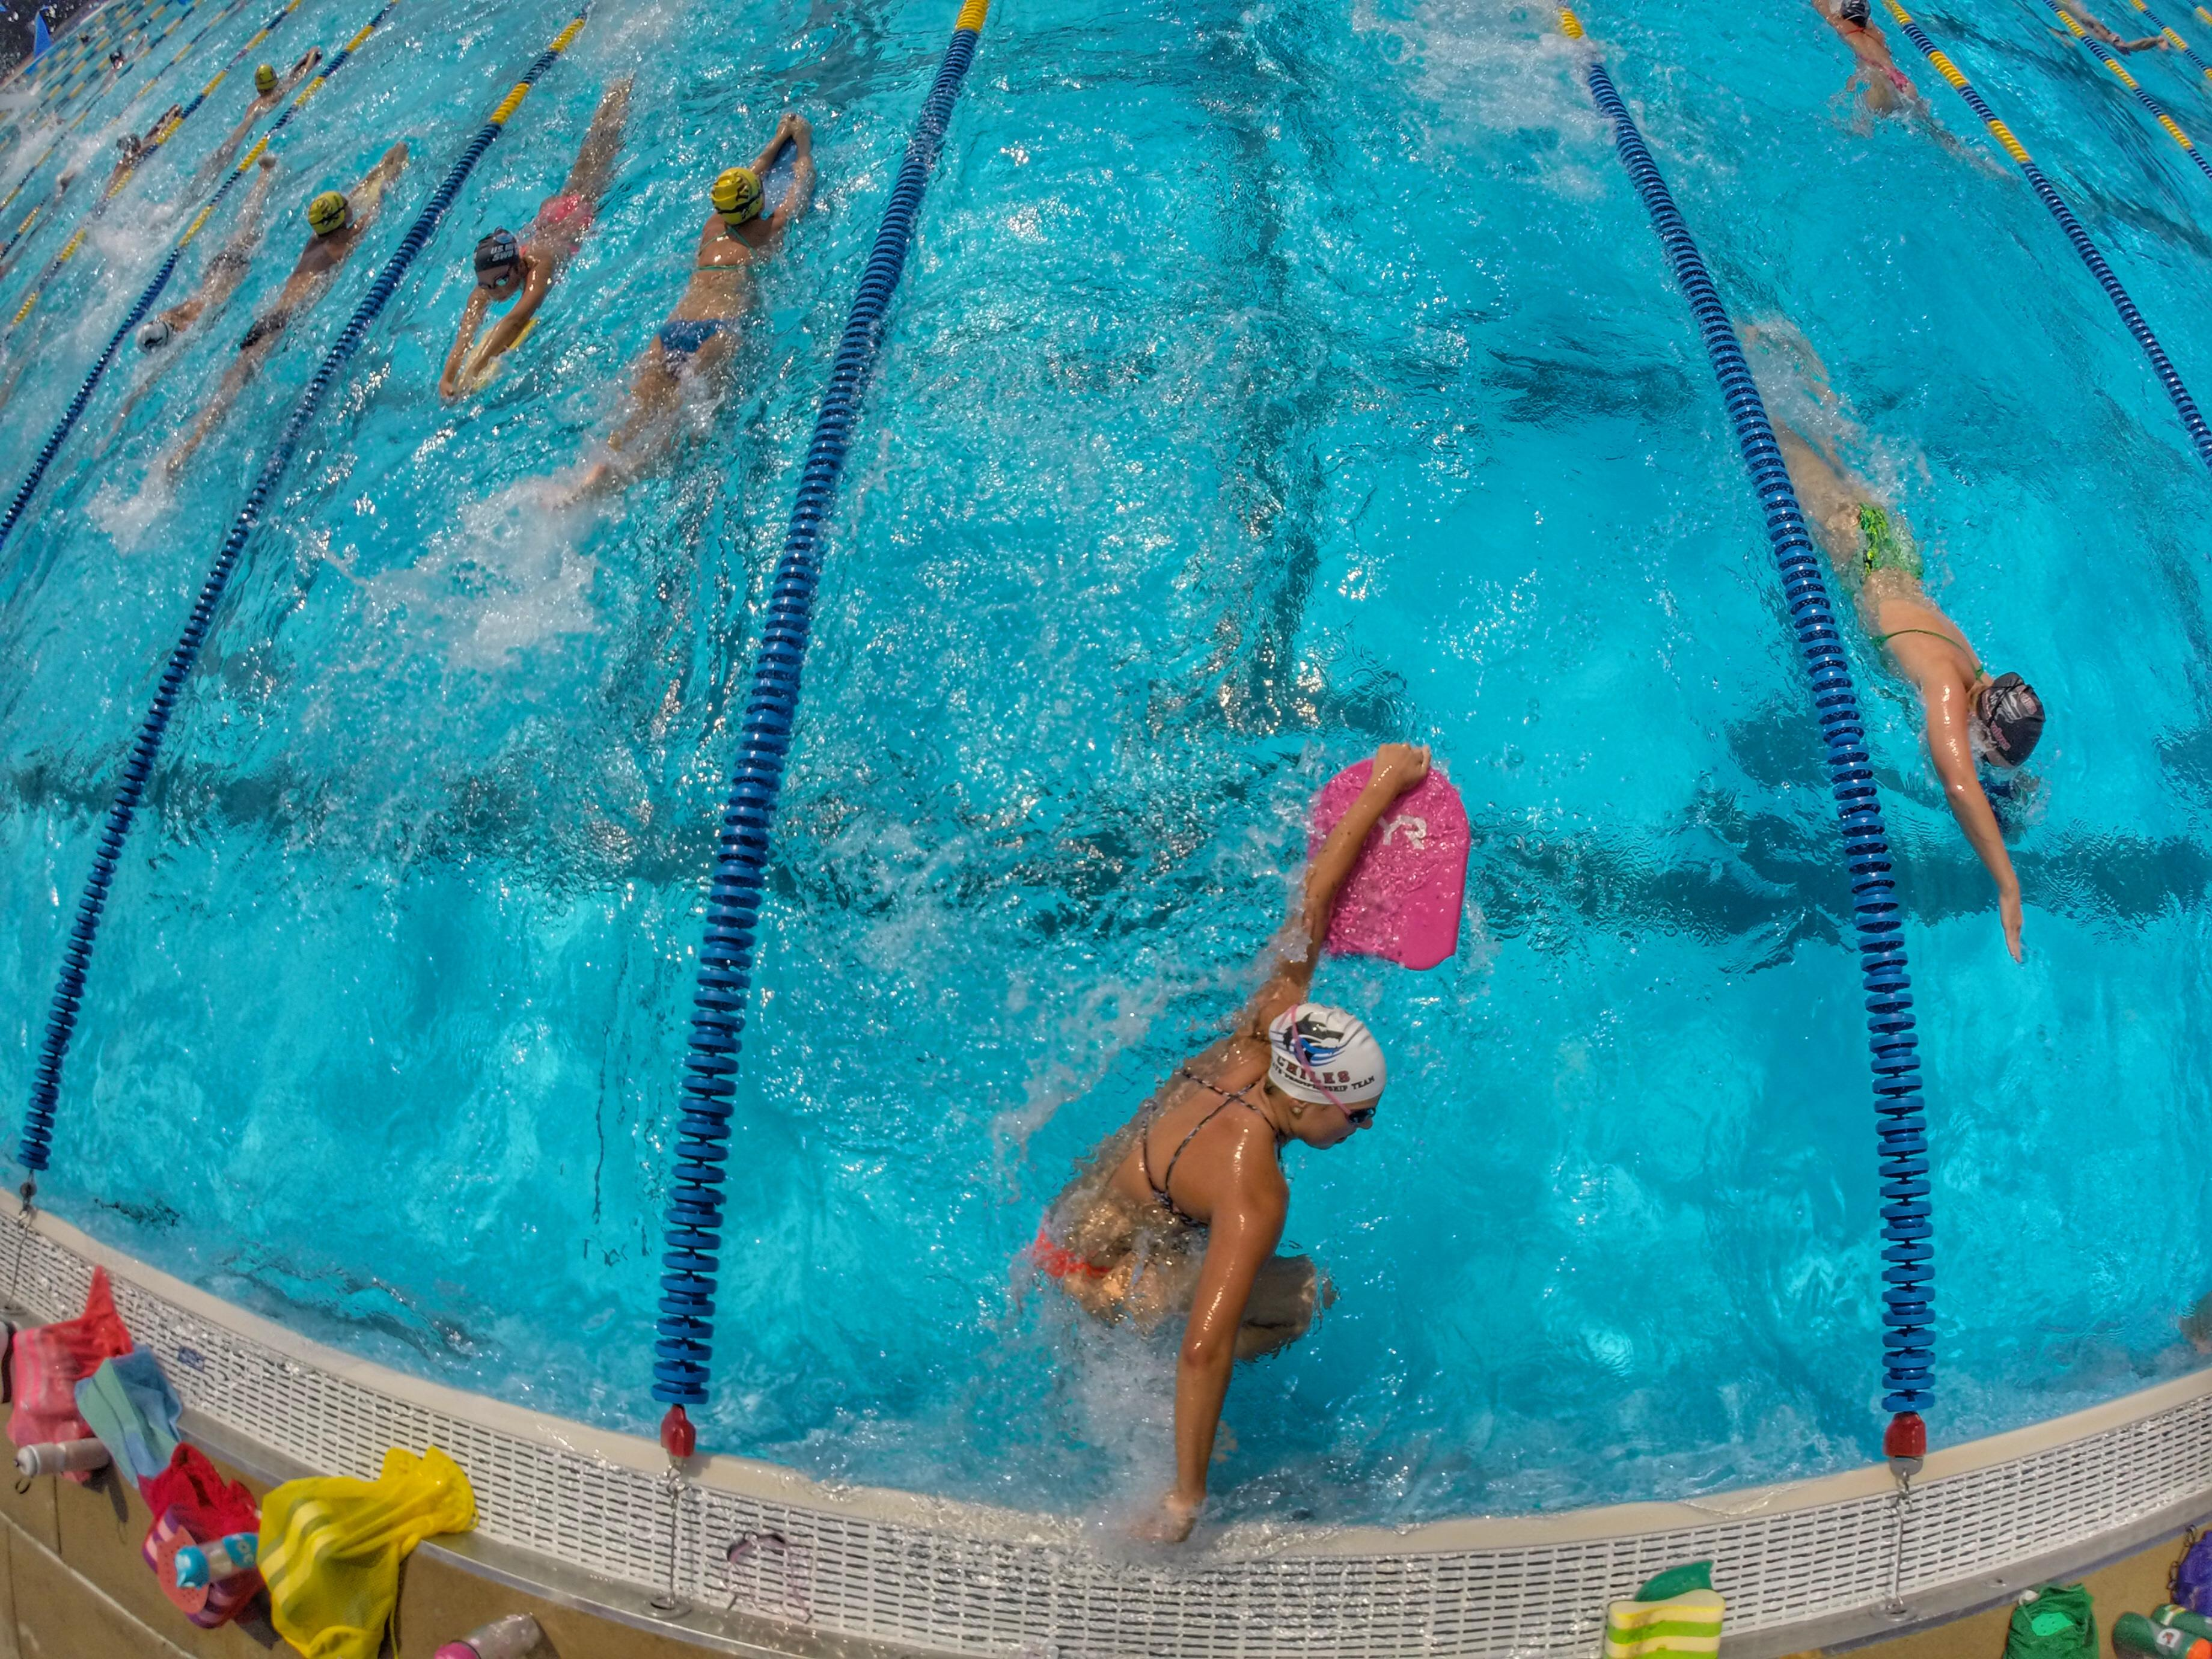 Population growth on the north side of Tallahassee caused rapid expansion of Chiles, which has had a run of swimming success. Schools such as Leon and Lincoln hope that will normalize soon and create parity.